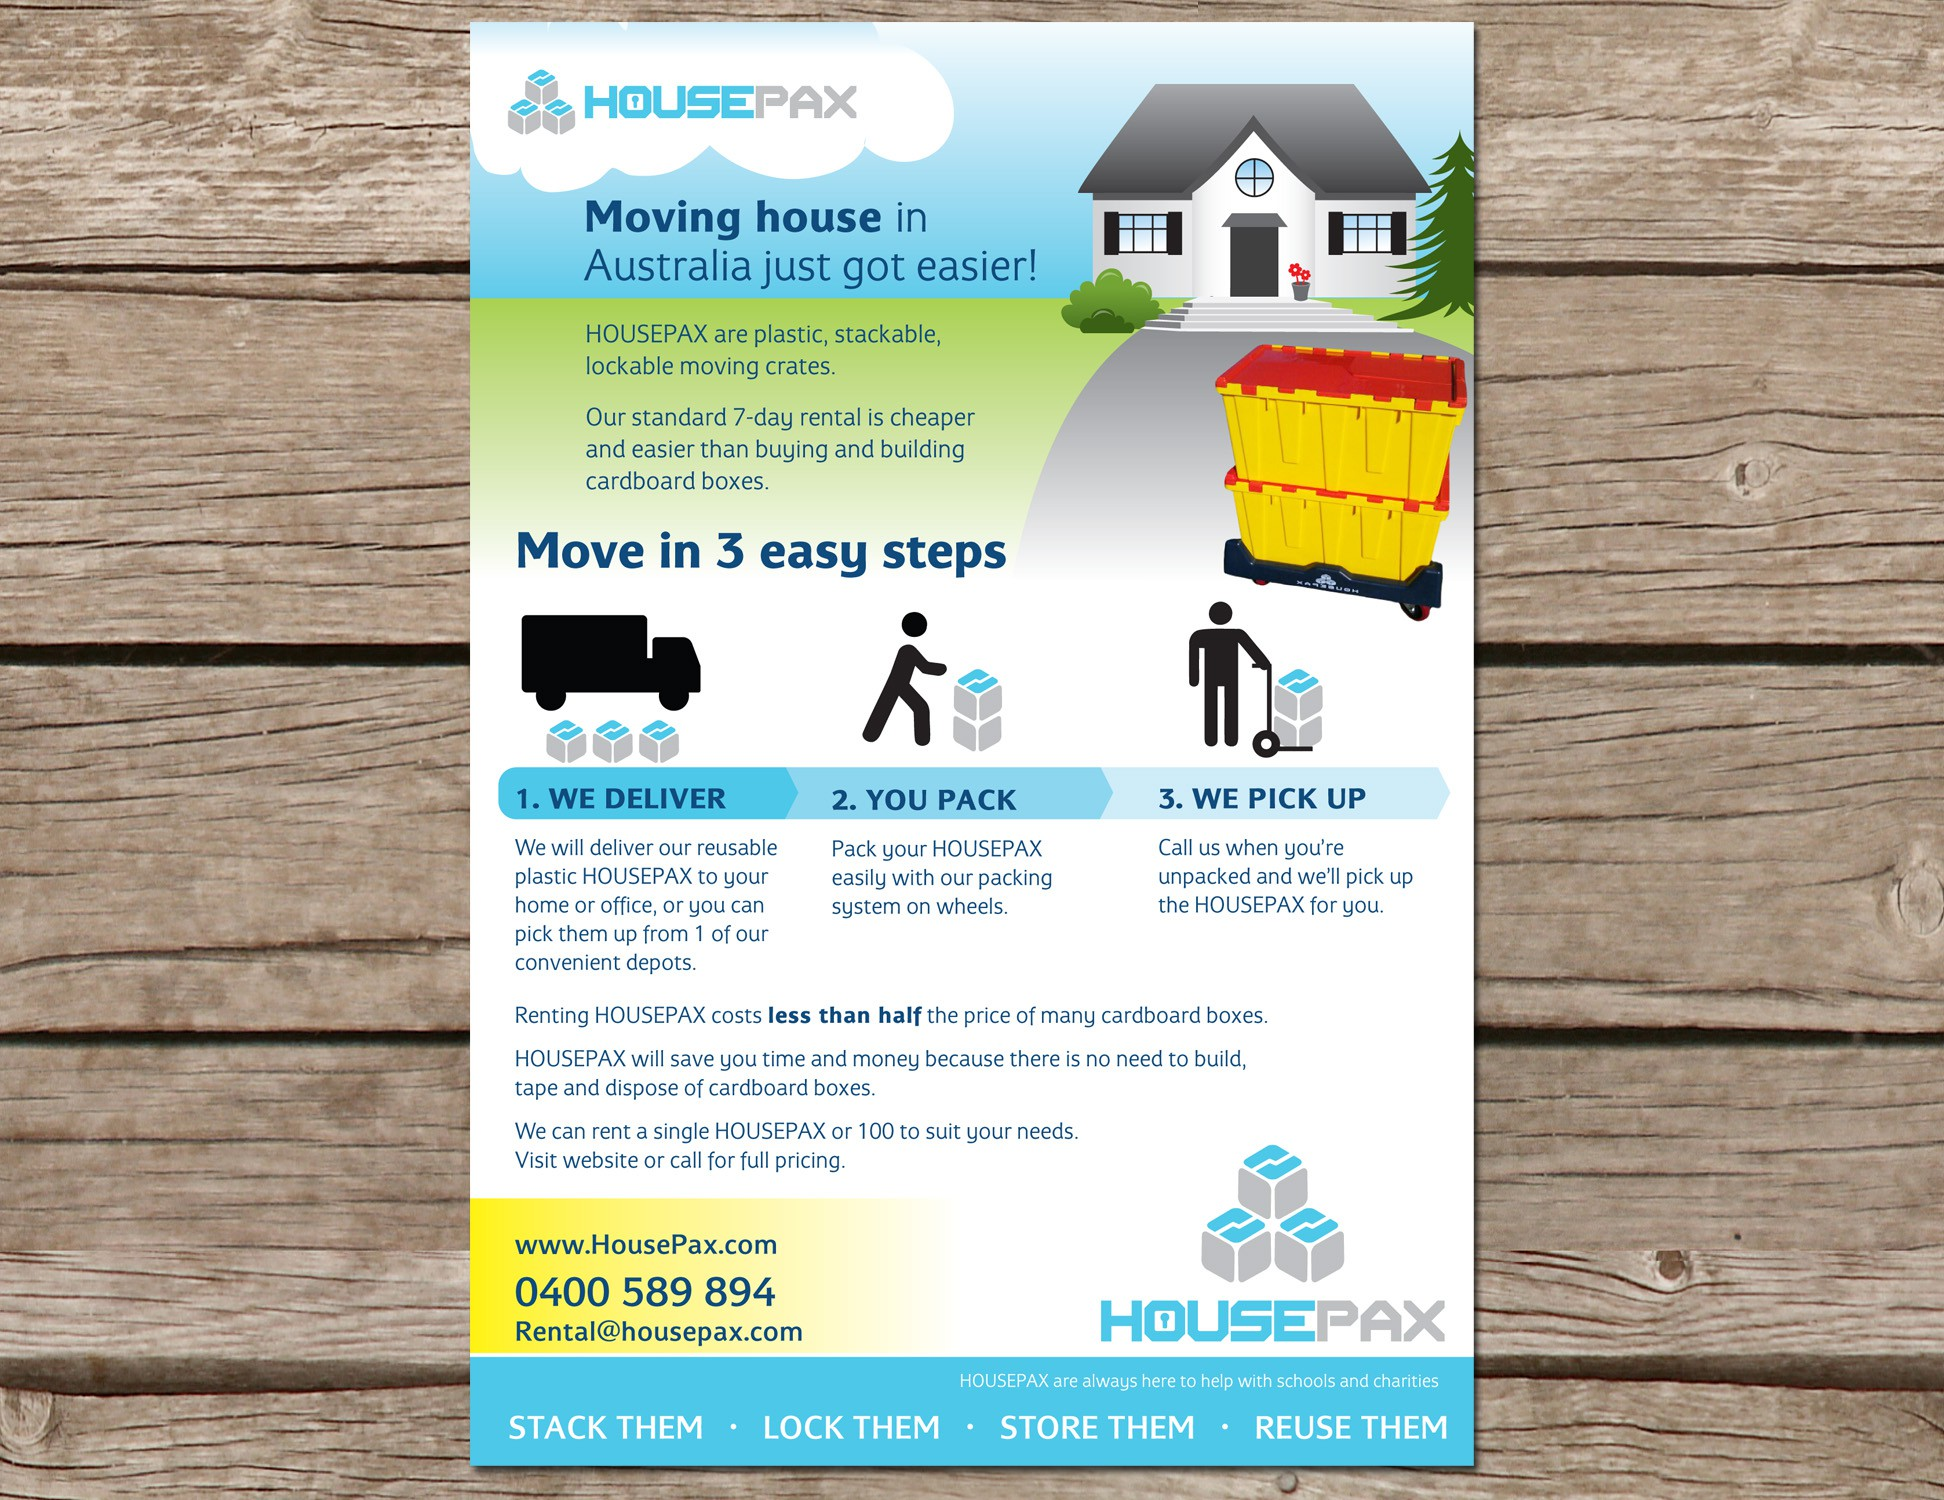 New postcard or flyer wanted for HousePax .